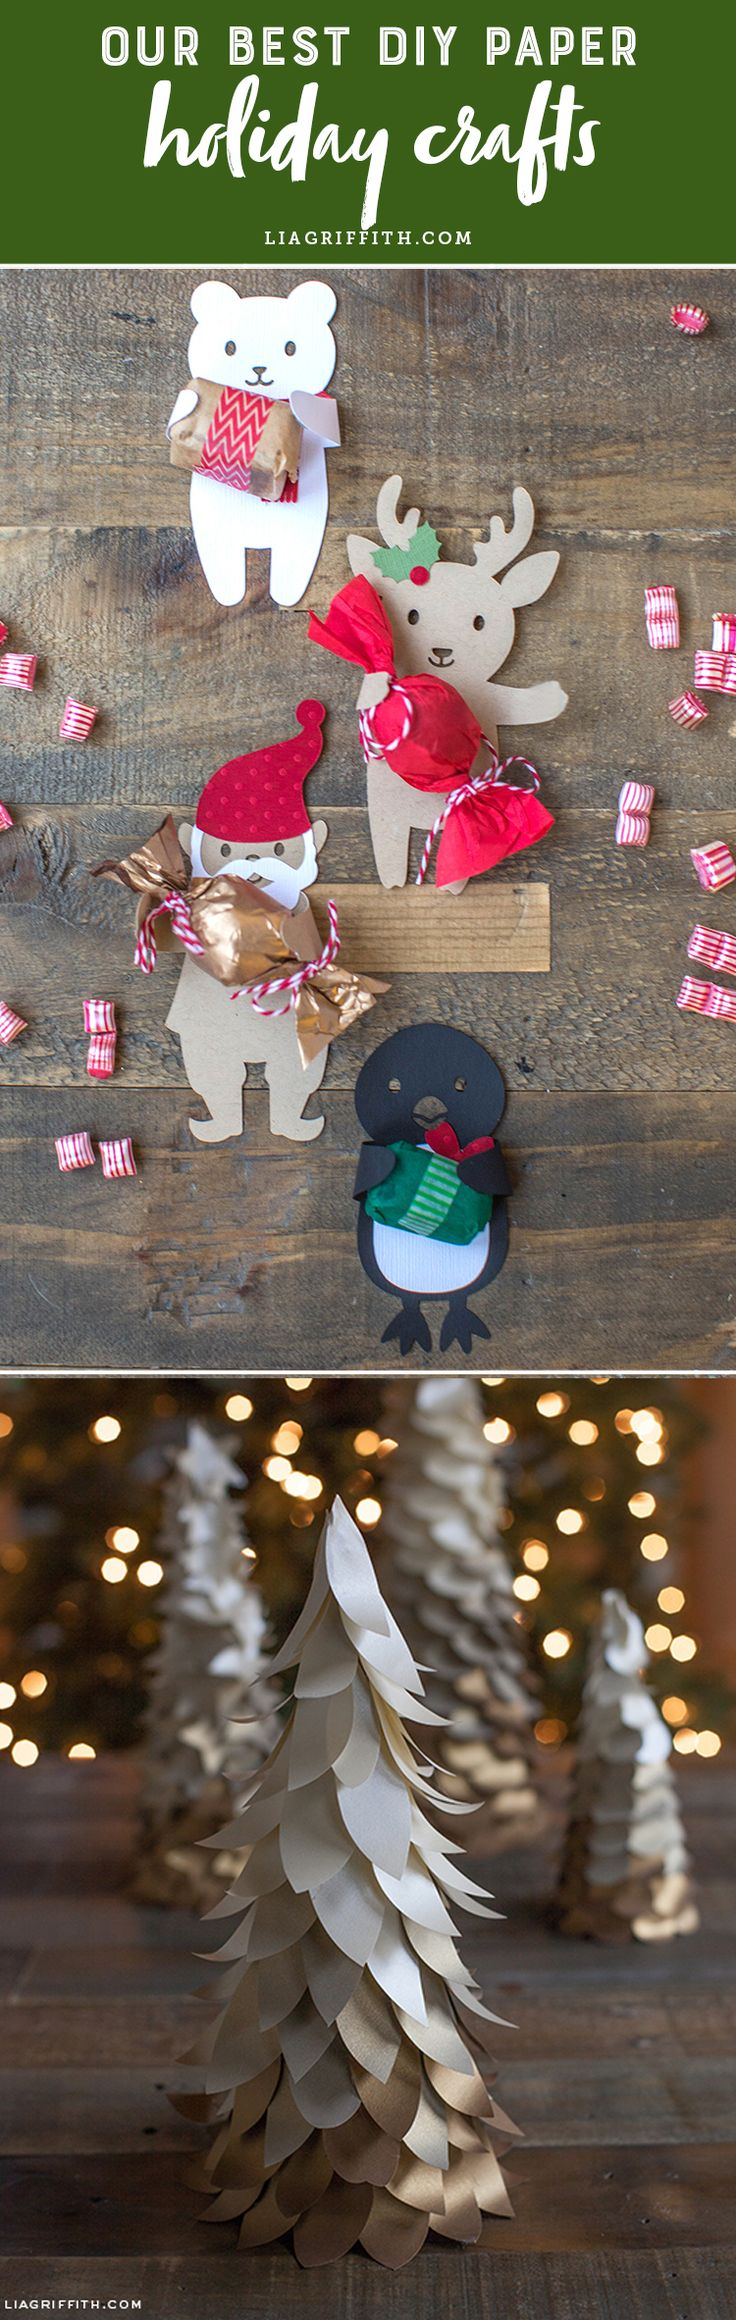 Our Best DIY Paper Holiday Crafts - Lia Griffith - www.liagriffith.com #diyholiday #diyholidays #diychristmas #diyidea #diyideas #diyproject #diyprojects #homefortheholidays #madewithlia